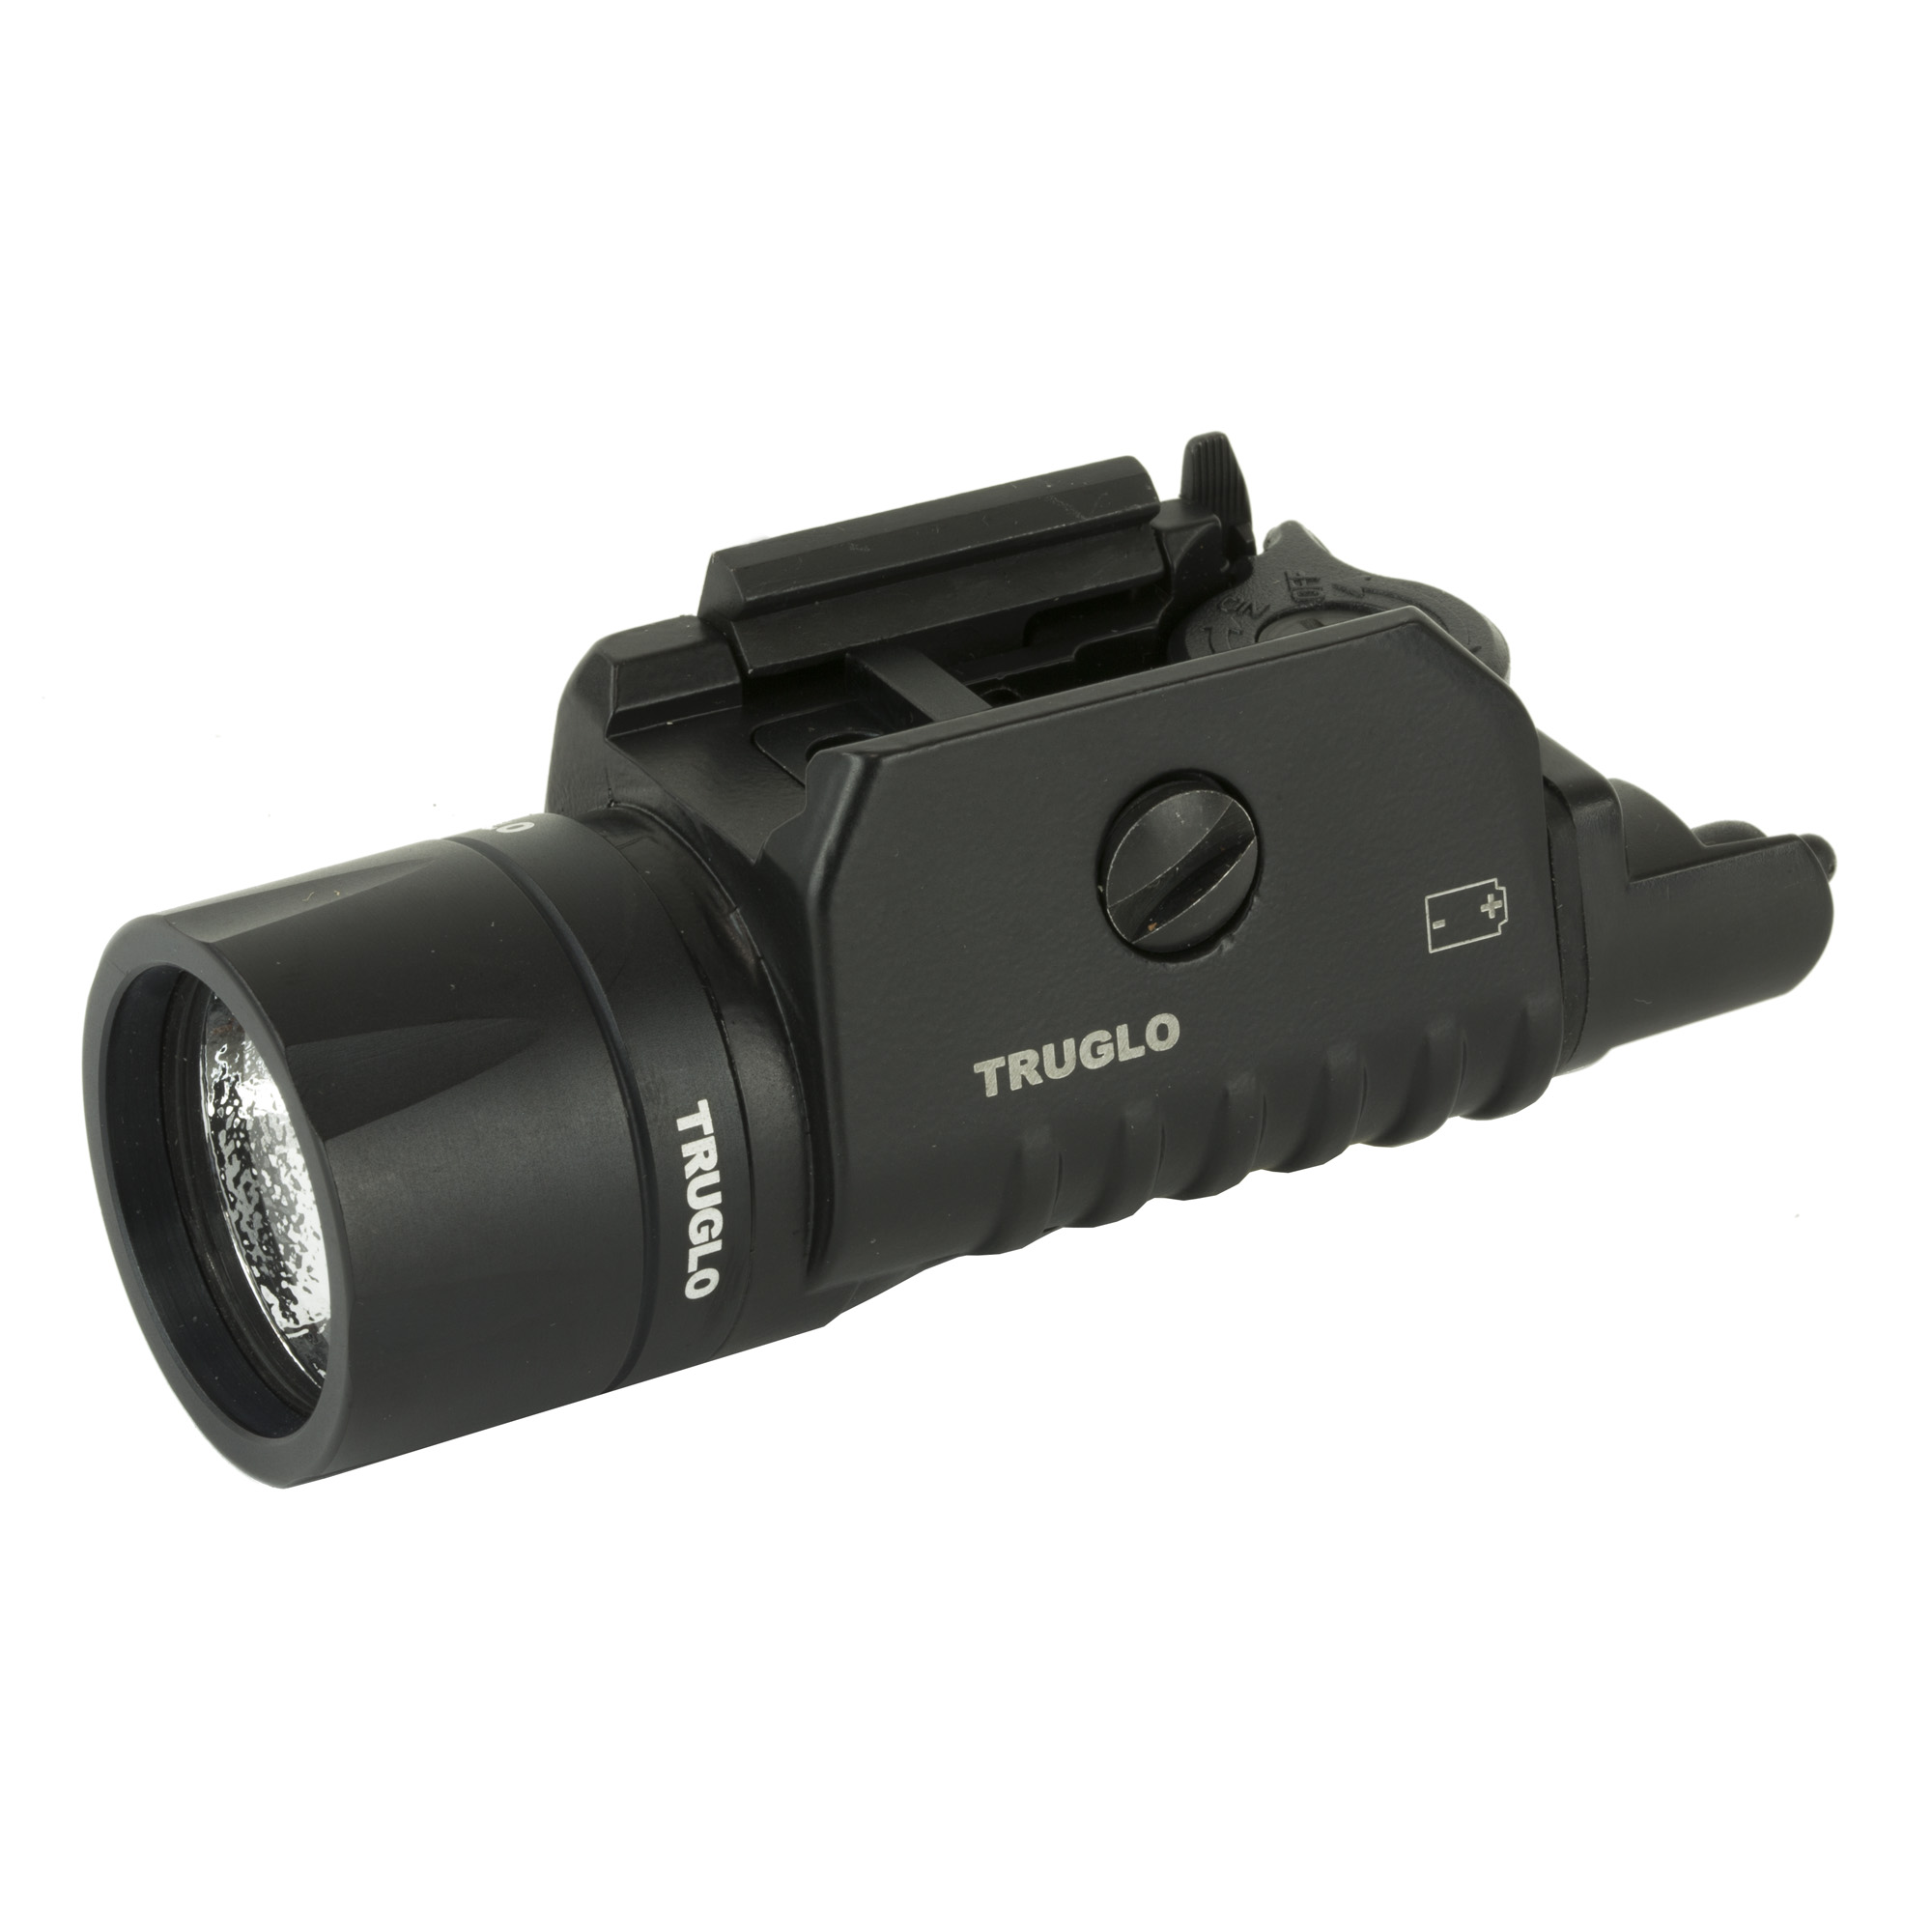 The Truglo Tru Point Laser/light combo features a laser located in the flashlight housing for a compact design with interchangeable back plates for right or left hand use.